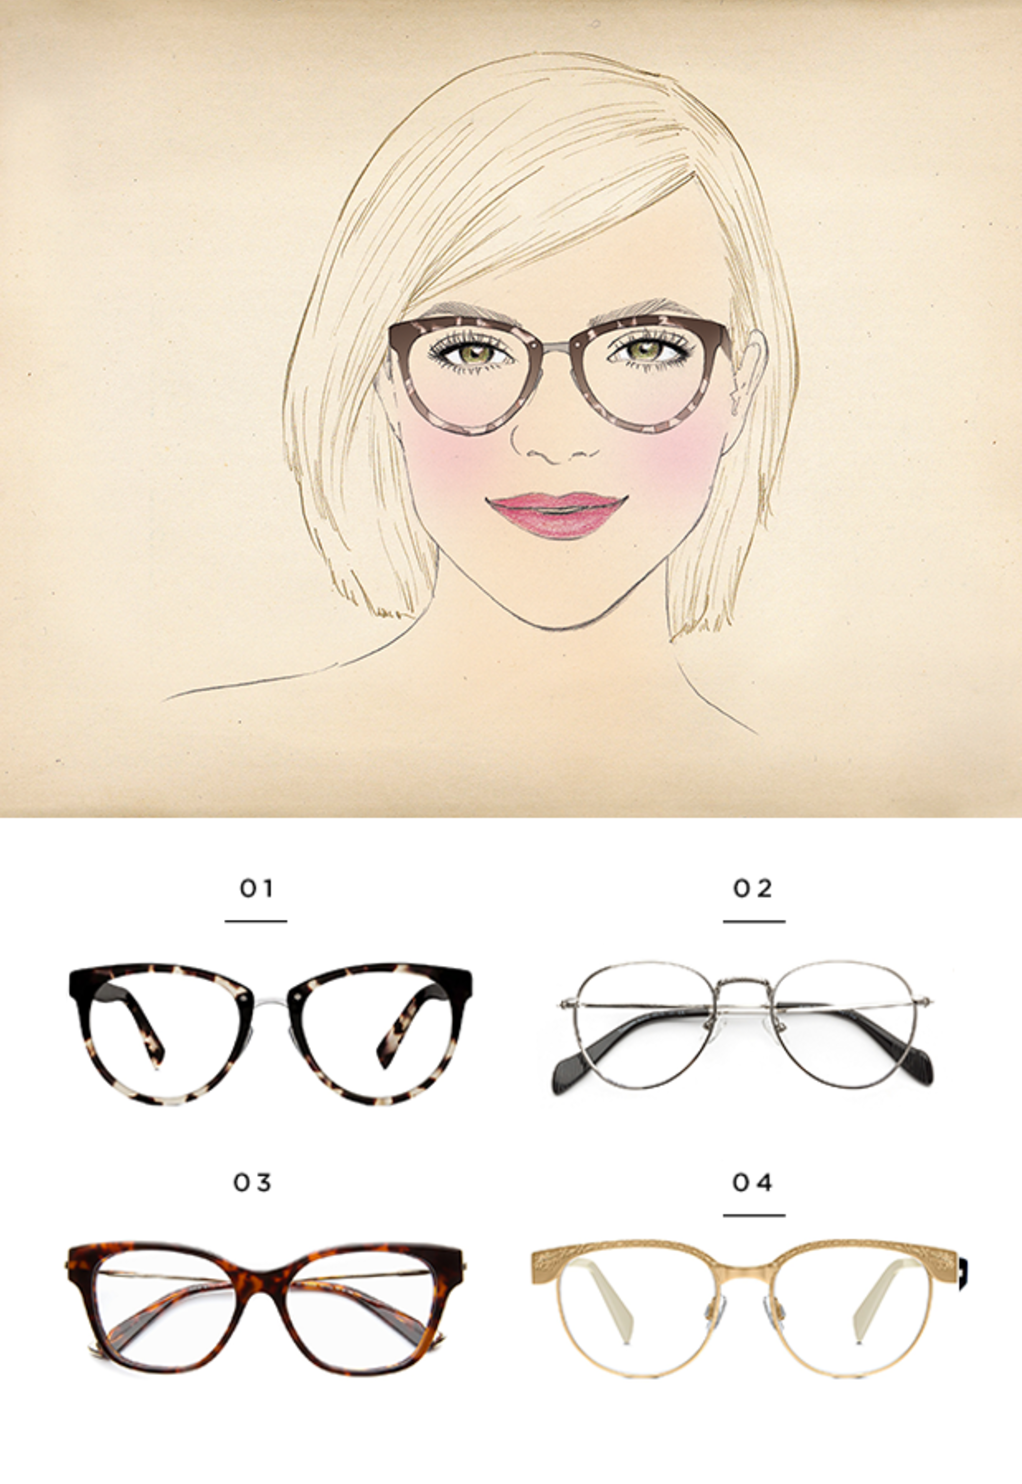 The Best Glasses For All Face Shapes Glasses For Round Faces Glasses For Face Shape Eyeglasses For Oval Face